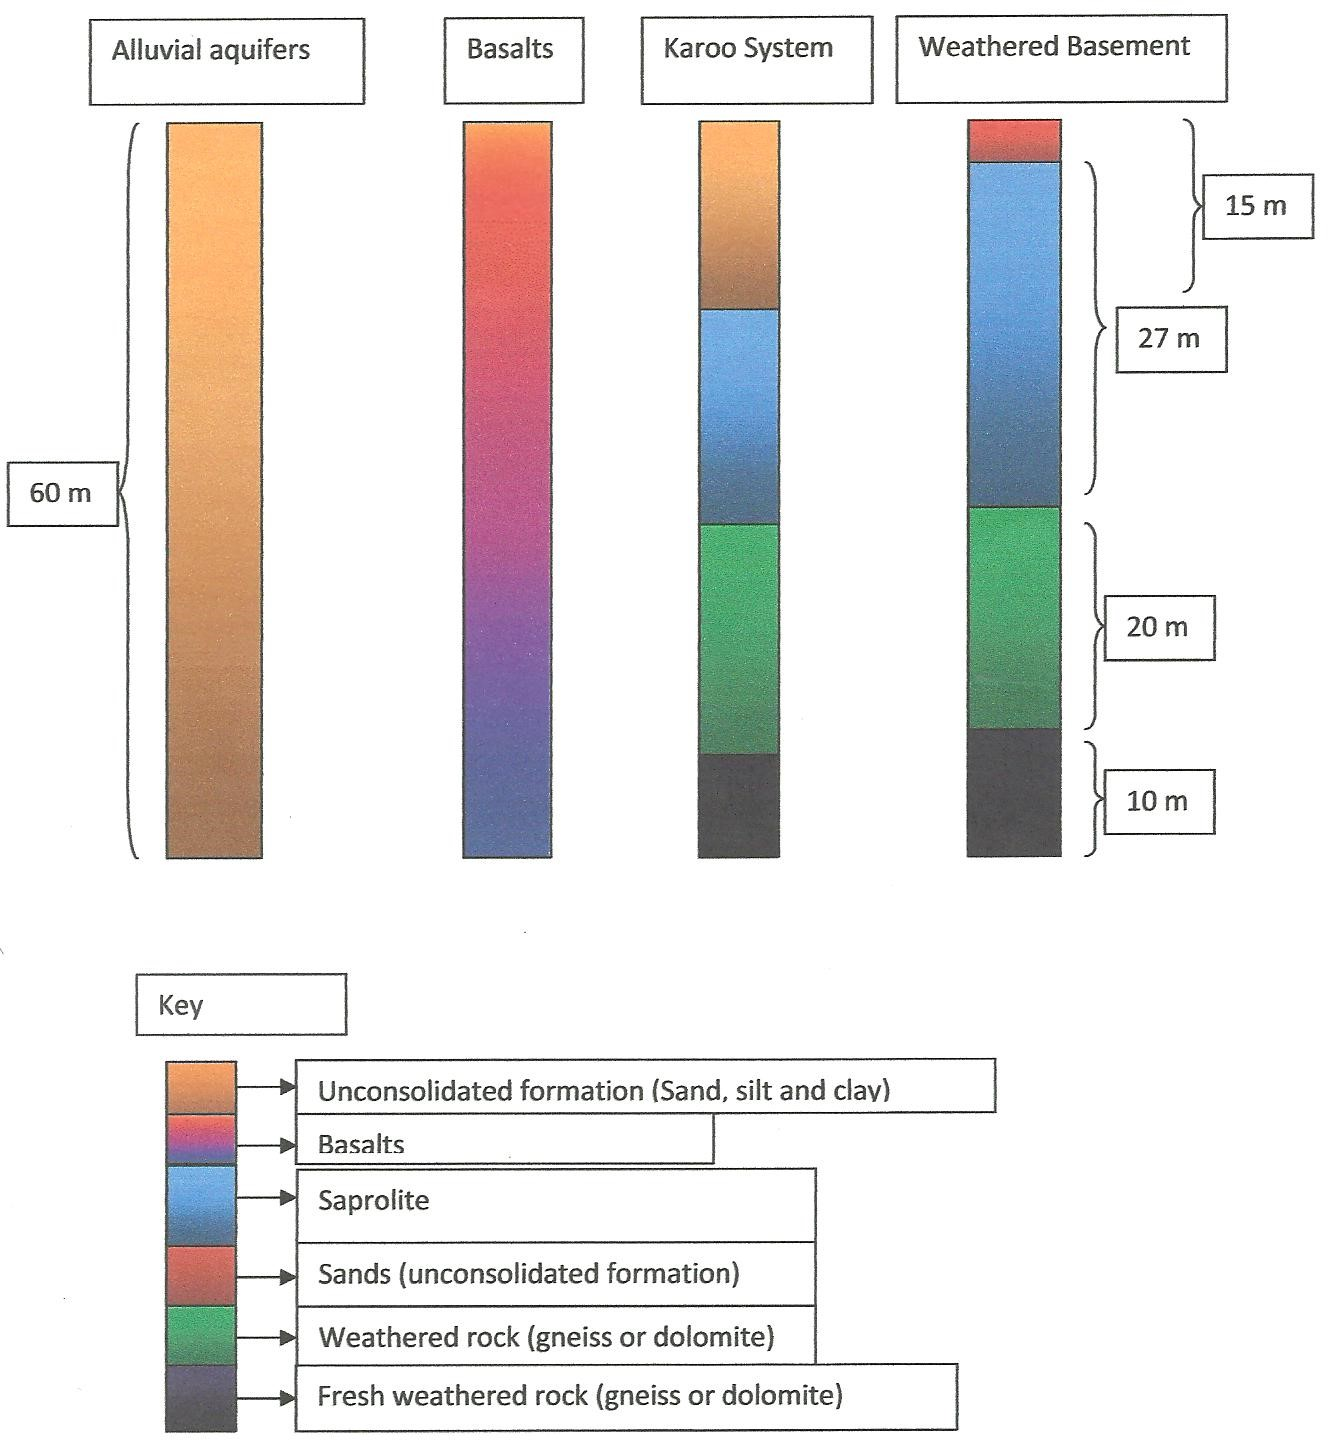 Vertical Trends and Distribution of Salinity in Geological Strata in Lower Shire Valley, Malawi Using Vertical Electrical Sounding and Geochemical Analyses